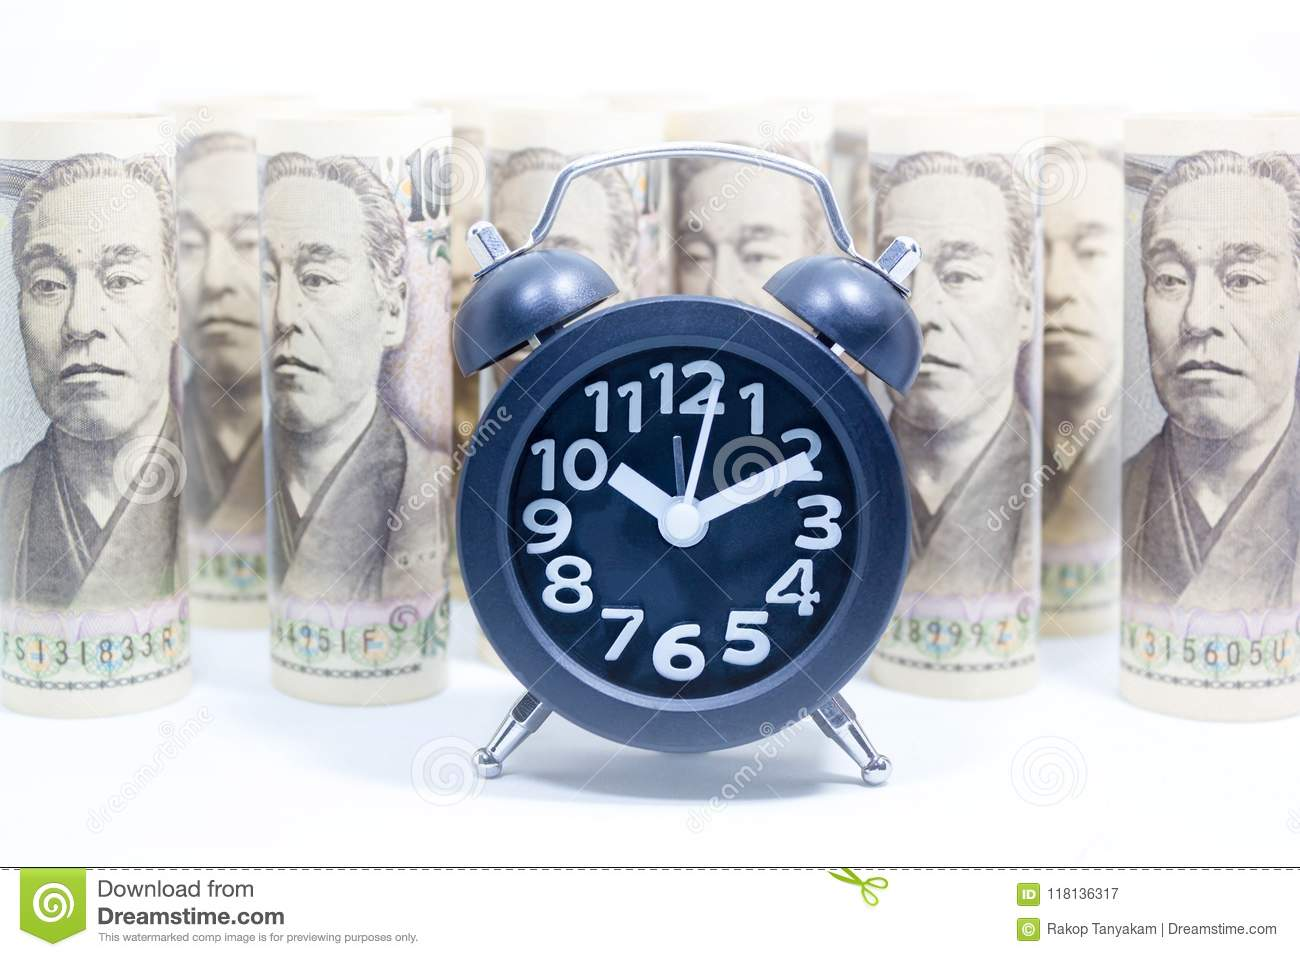 The time value on the clock. The same time on the clock - the value 81